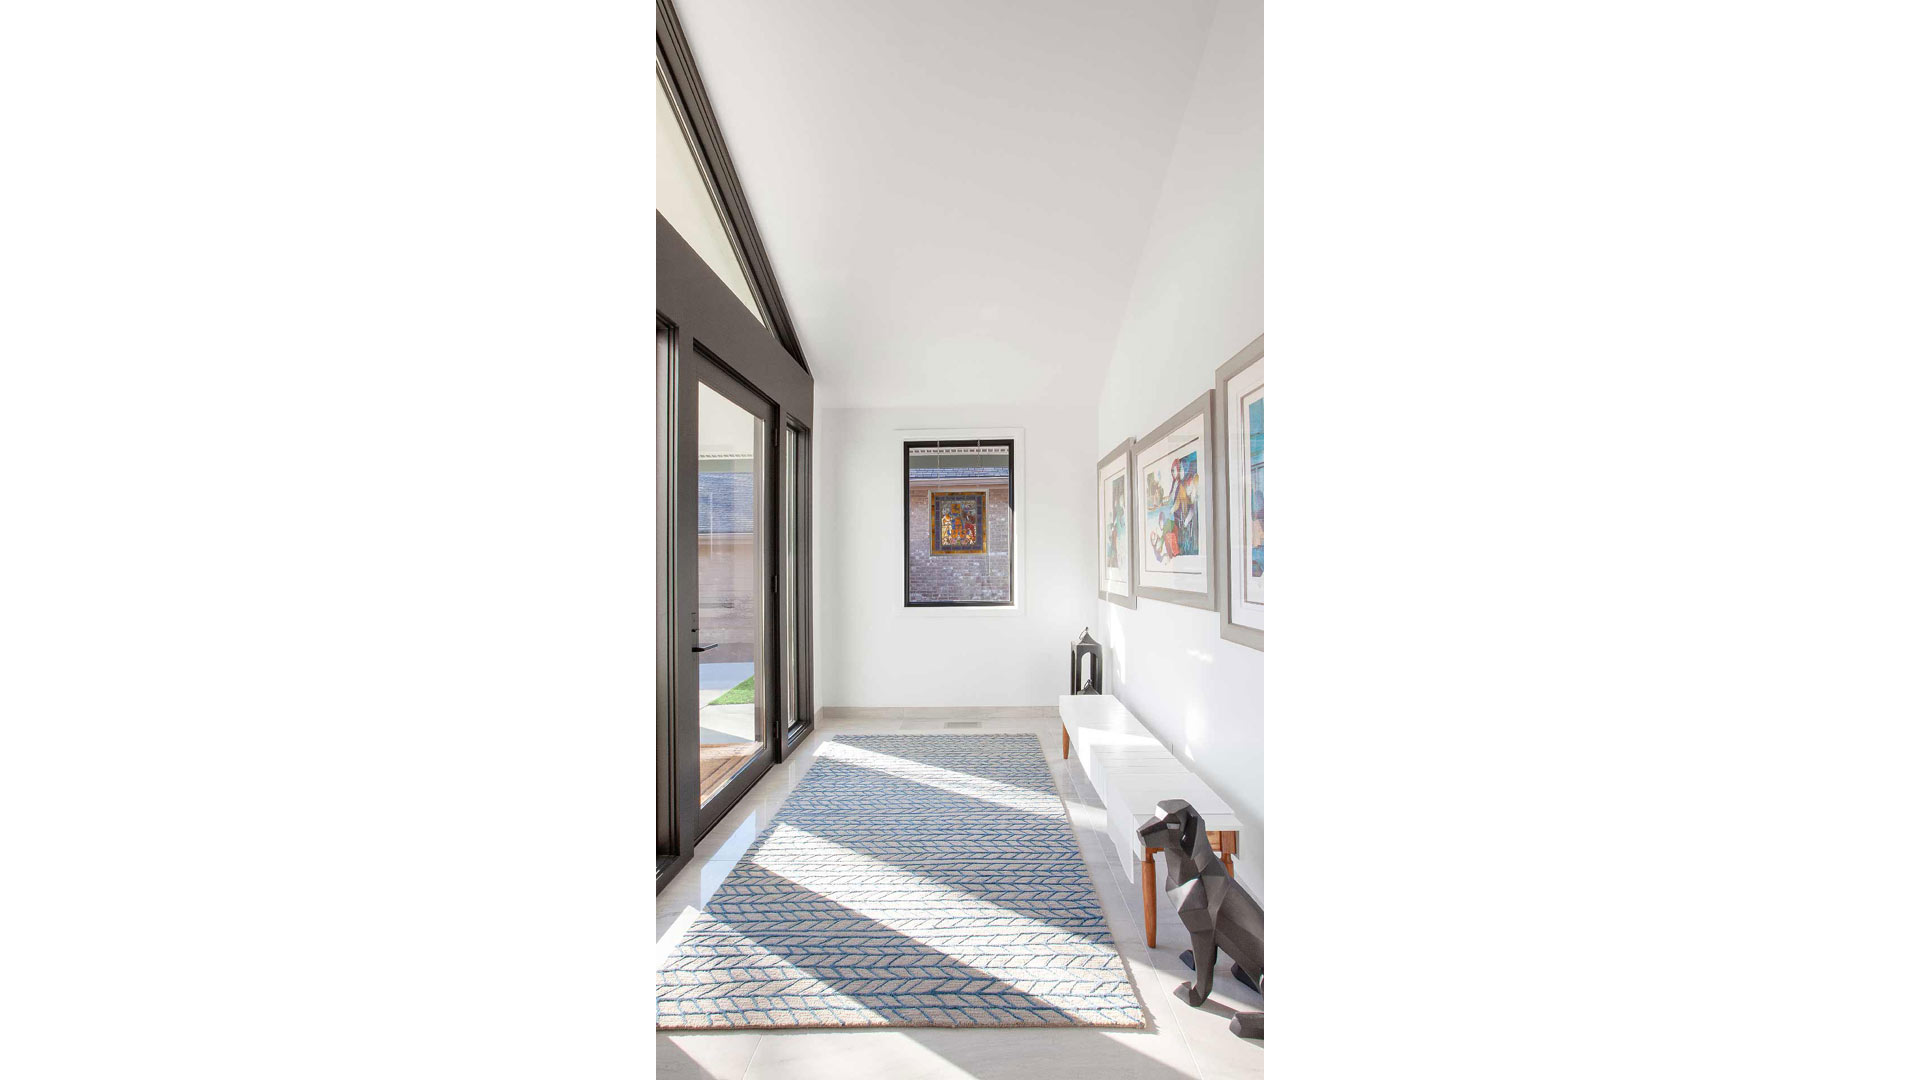 Entry Foyer includes large sidelights and transom windows, custom bench, colorful artwork, and stained glass - Modern Lakehouse Renovation - Clearwater - Indianapolis